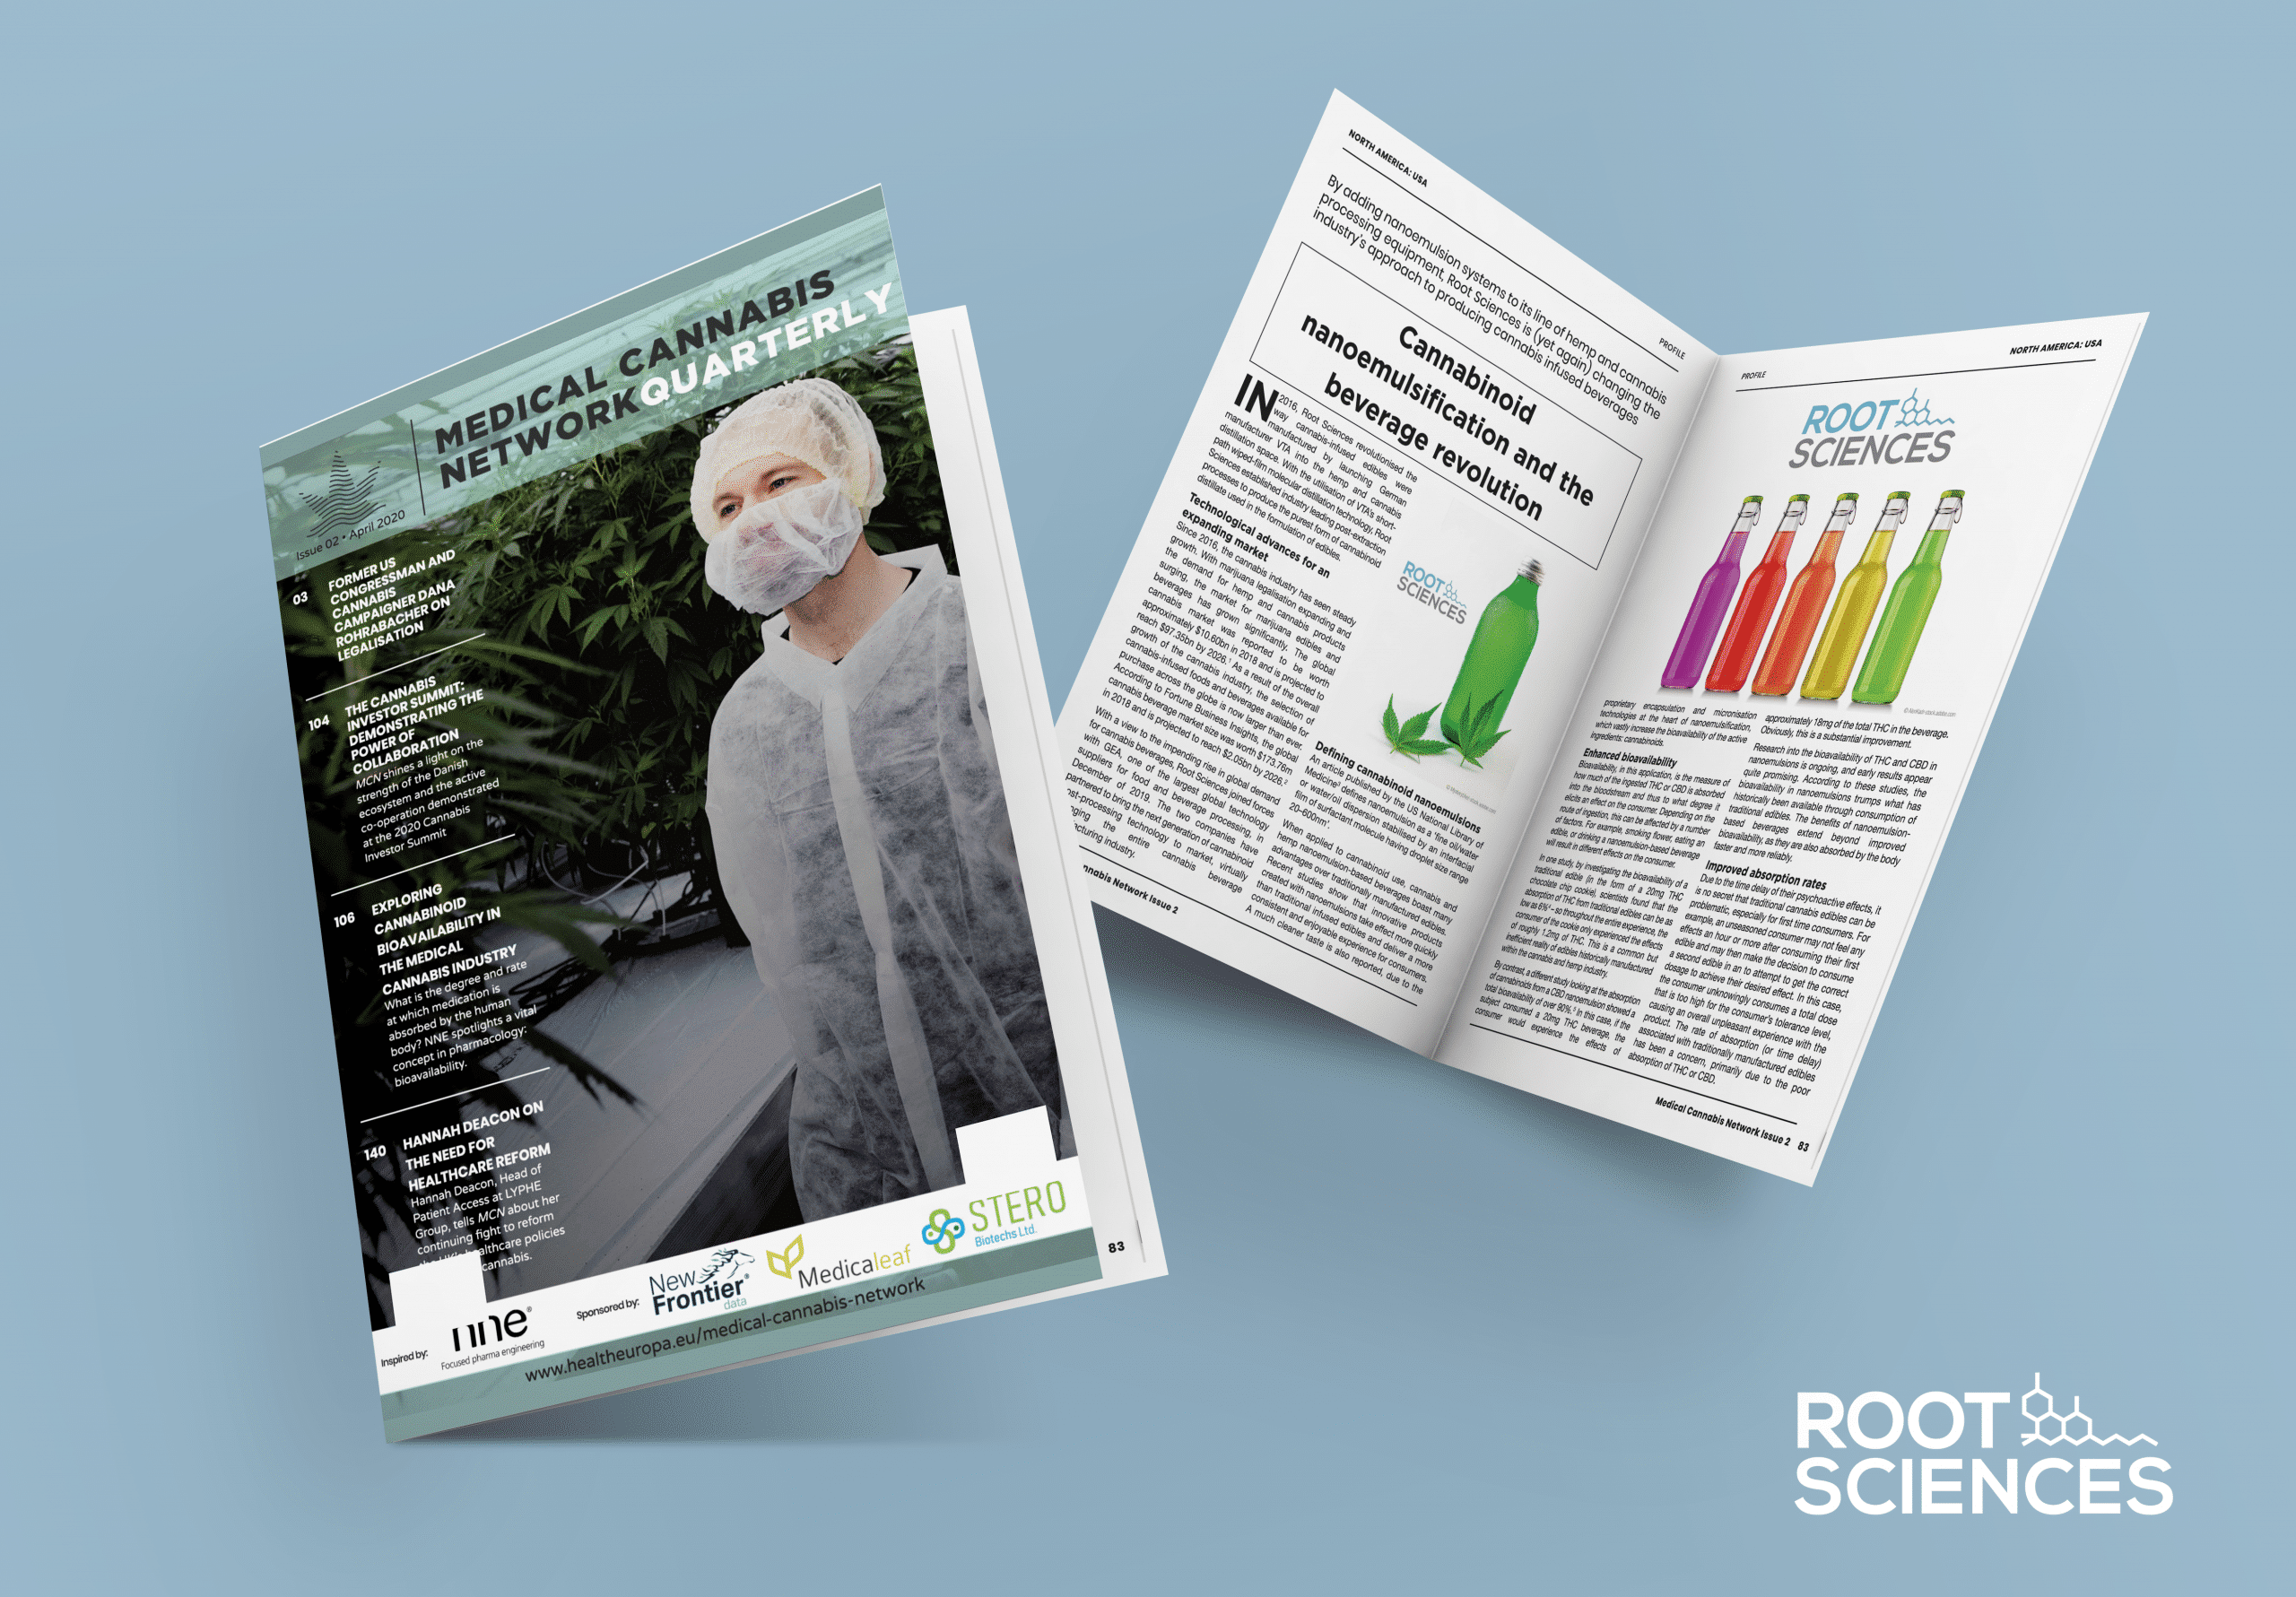 Root Sciences Featured in Issue 2 of Medical Cannabis Network Quarterly